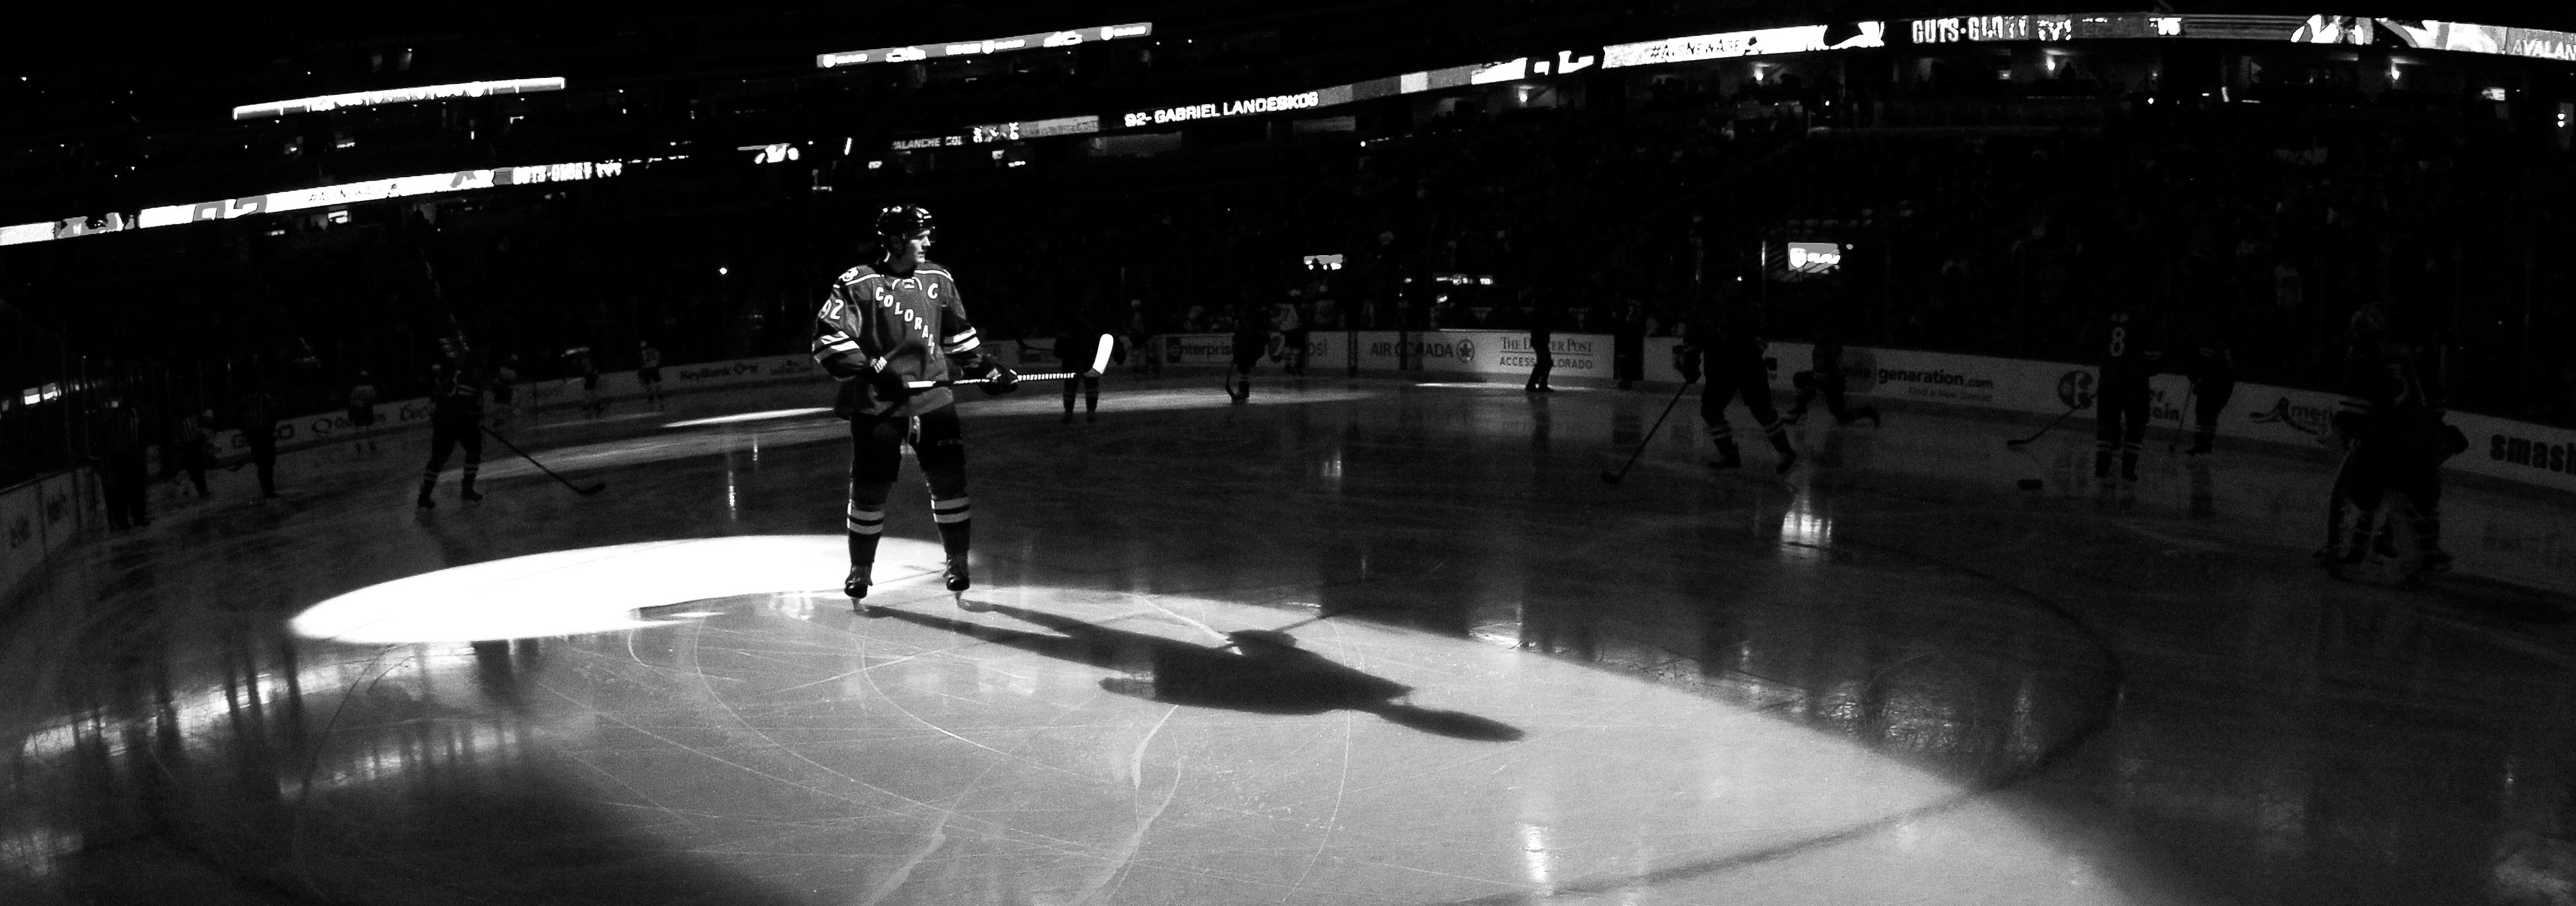 DENVER, CO - DECEMBER 11:  Gabriel Landeskog #92 of the Colorado Avalanche takes the ice to face the Winnipeg Jets at Pepsi Center on December 11, 2014 in Denver, Colorado. The Avalanche defeated the Jets 4-3 in an overtime shootout.  (Photo by Doug Pensinger/Getty Images)